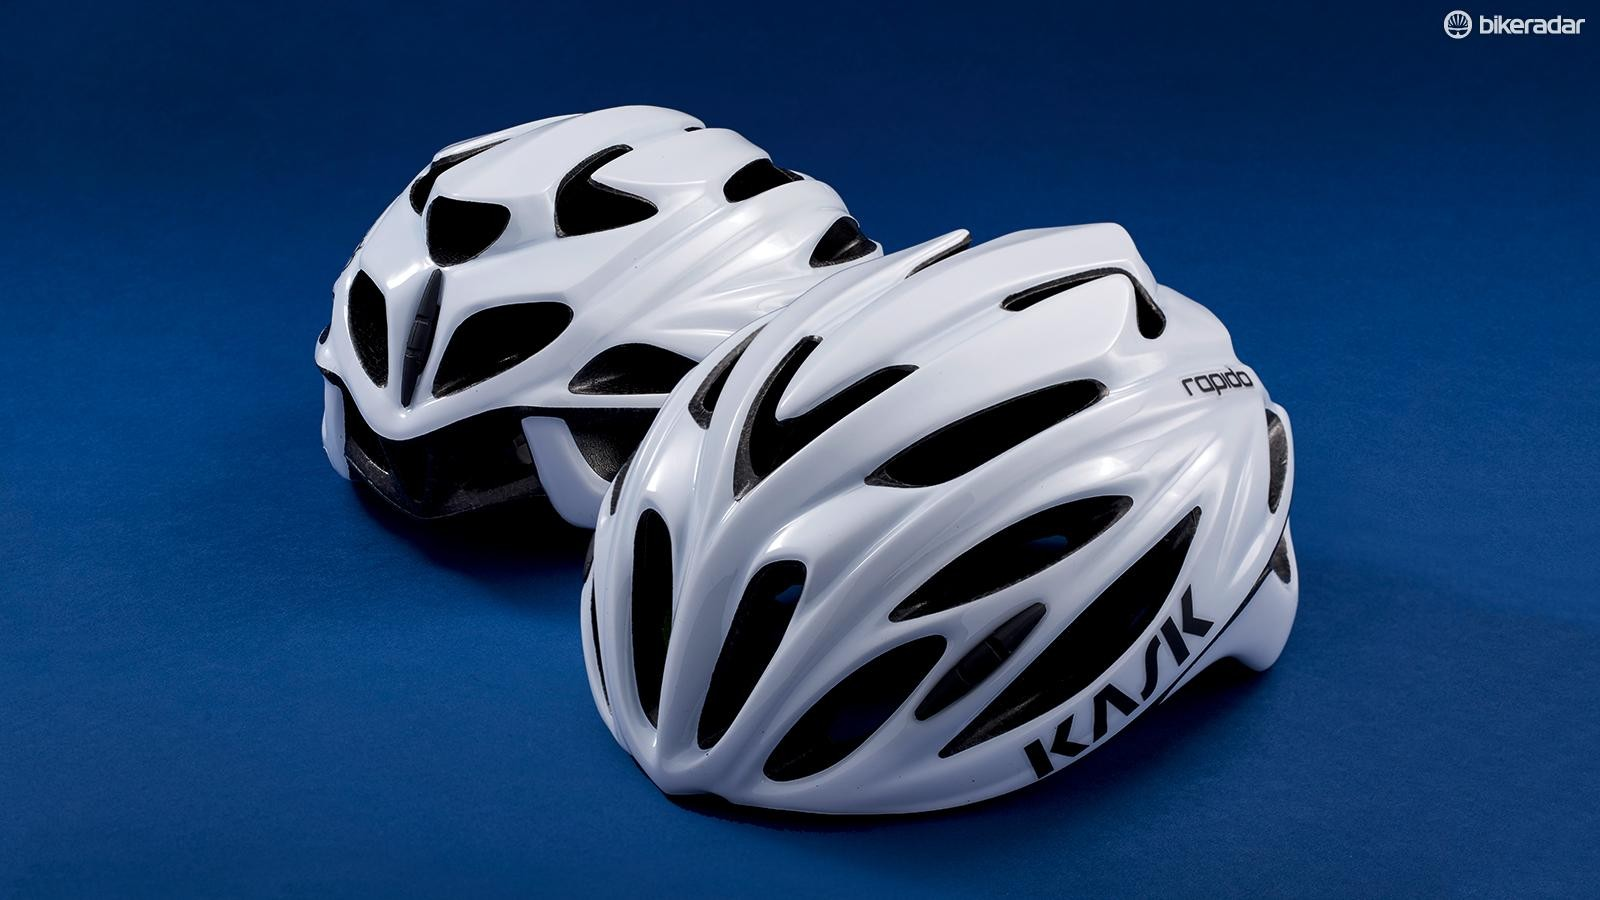 The Kask Rapido is lightweight and well ventilated